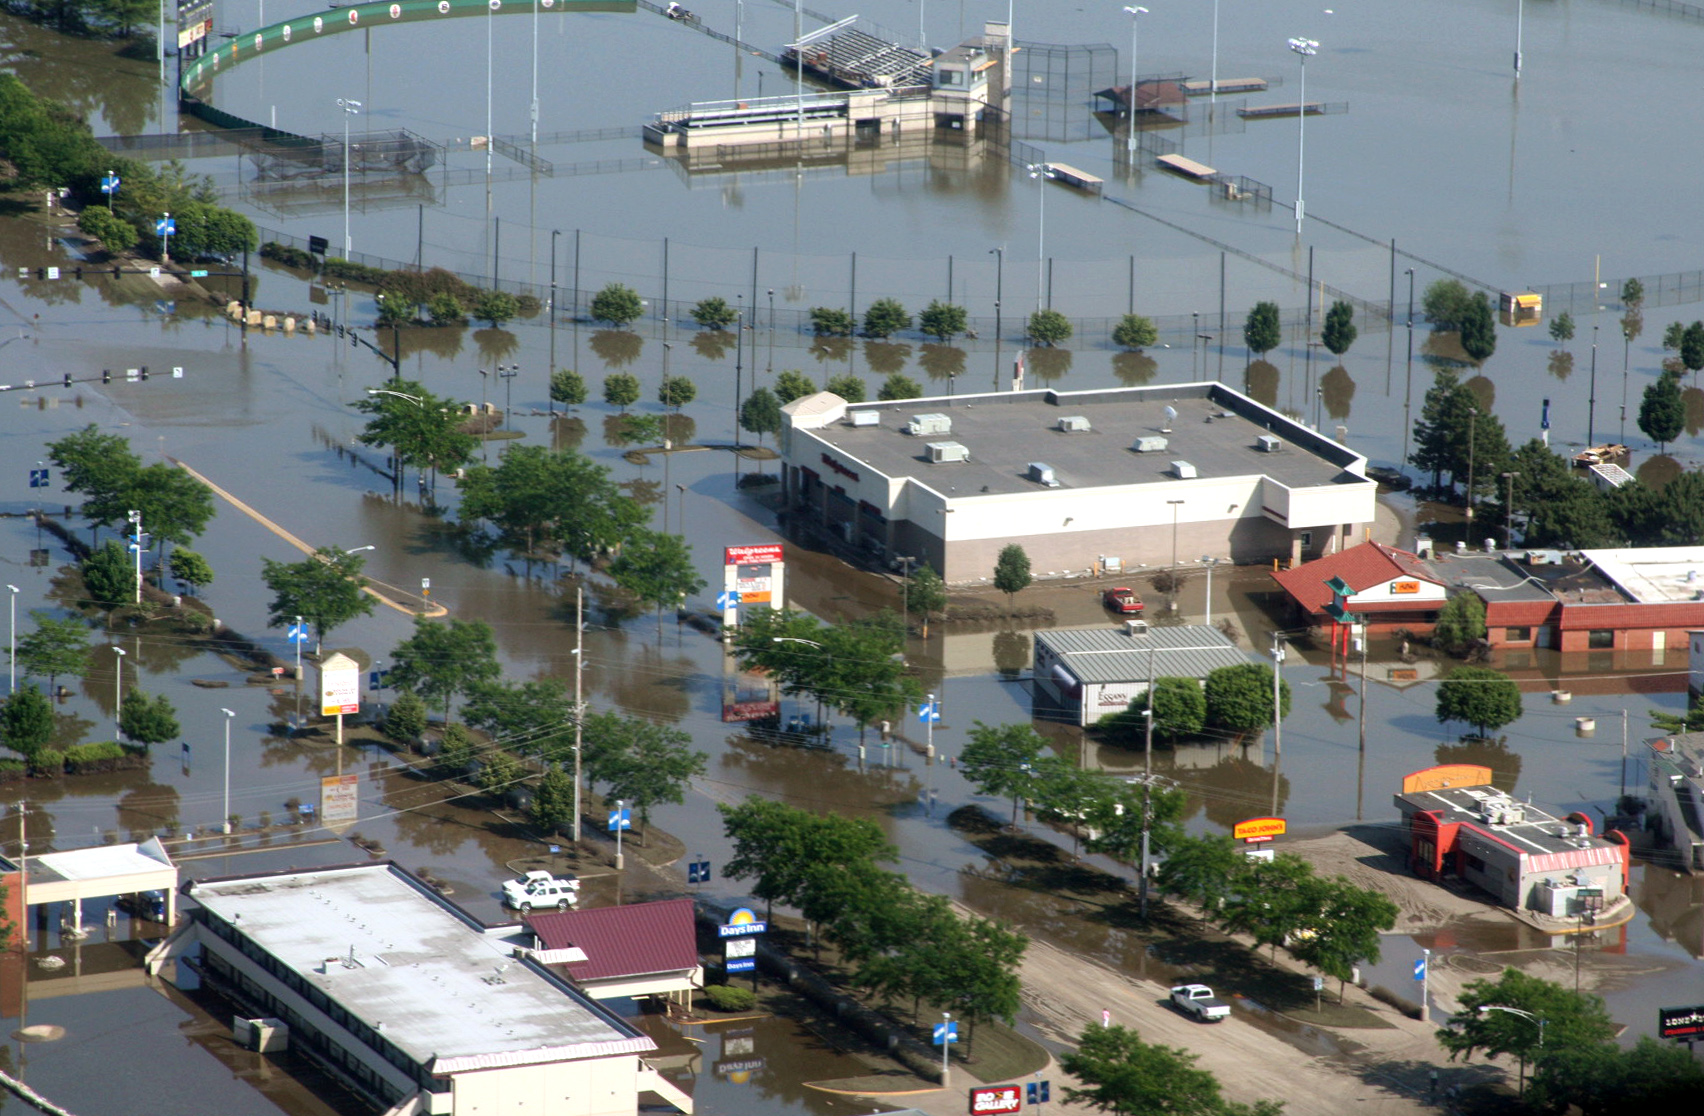 Water Damage Business Commercial Insurance Claim Adjusters International